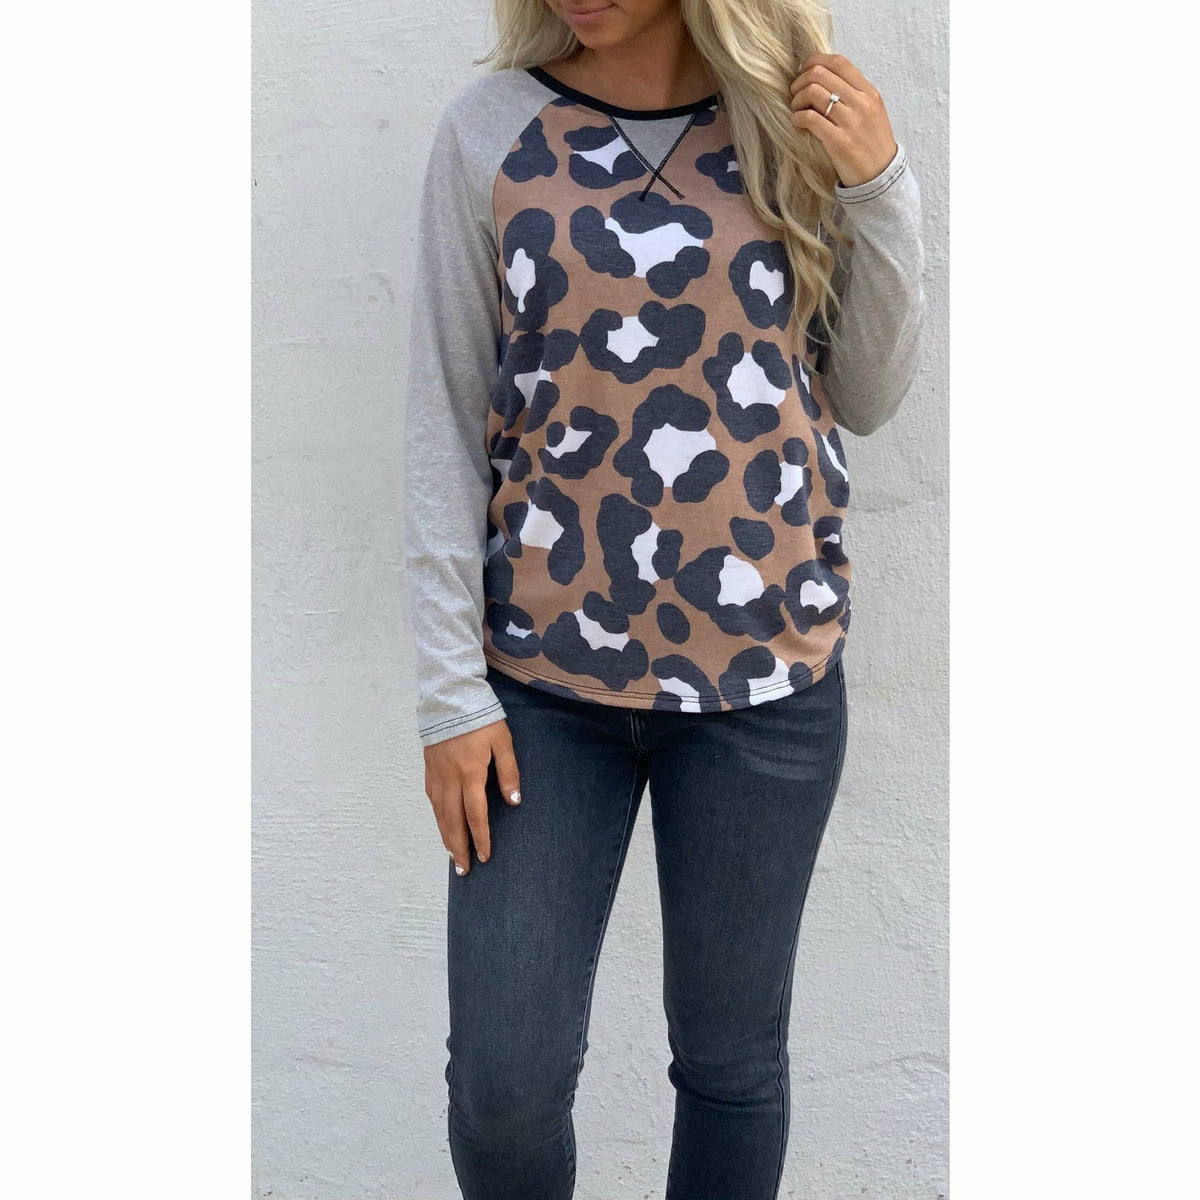 Basic Comfy leopard  (regular & plus) top